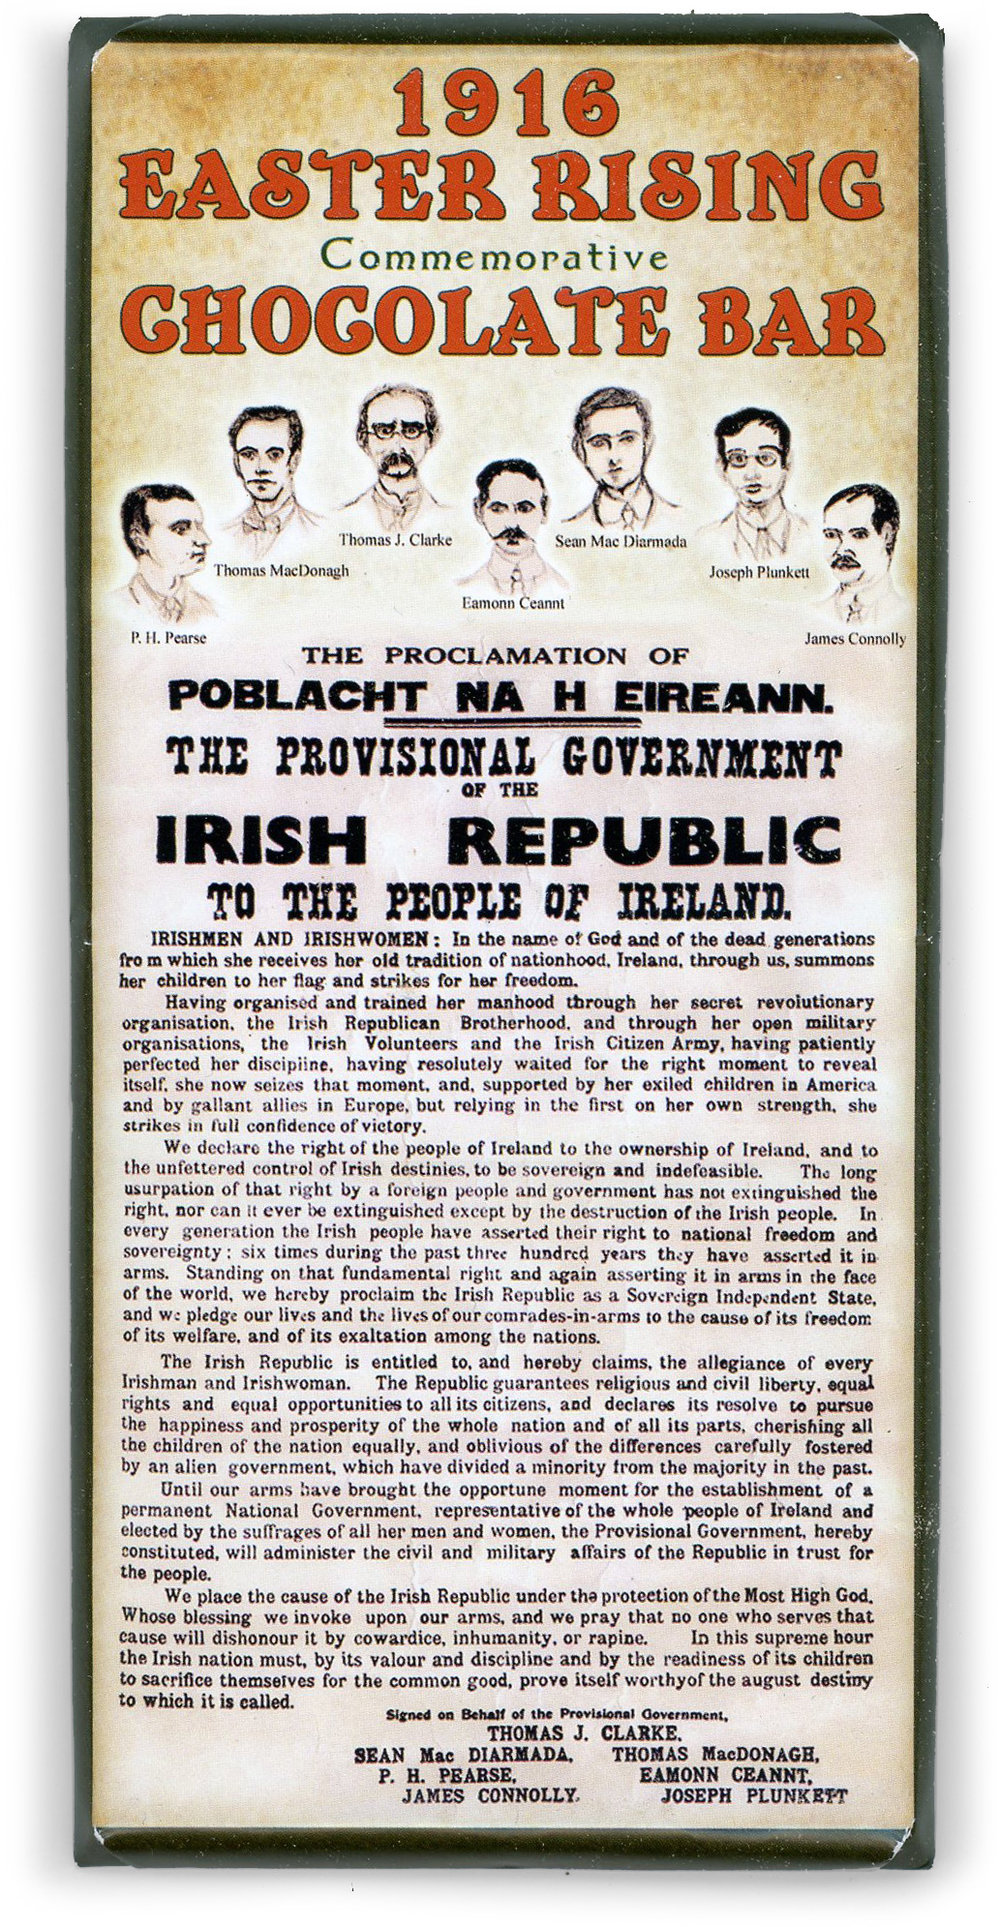 easter-rising-chocolate-bar.jpg